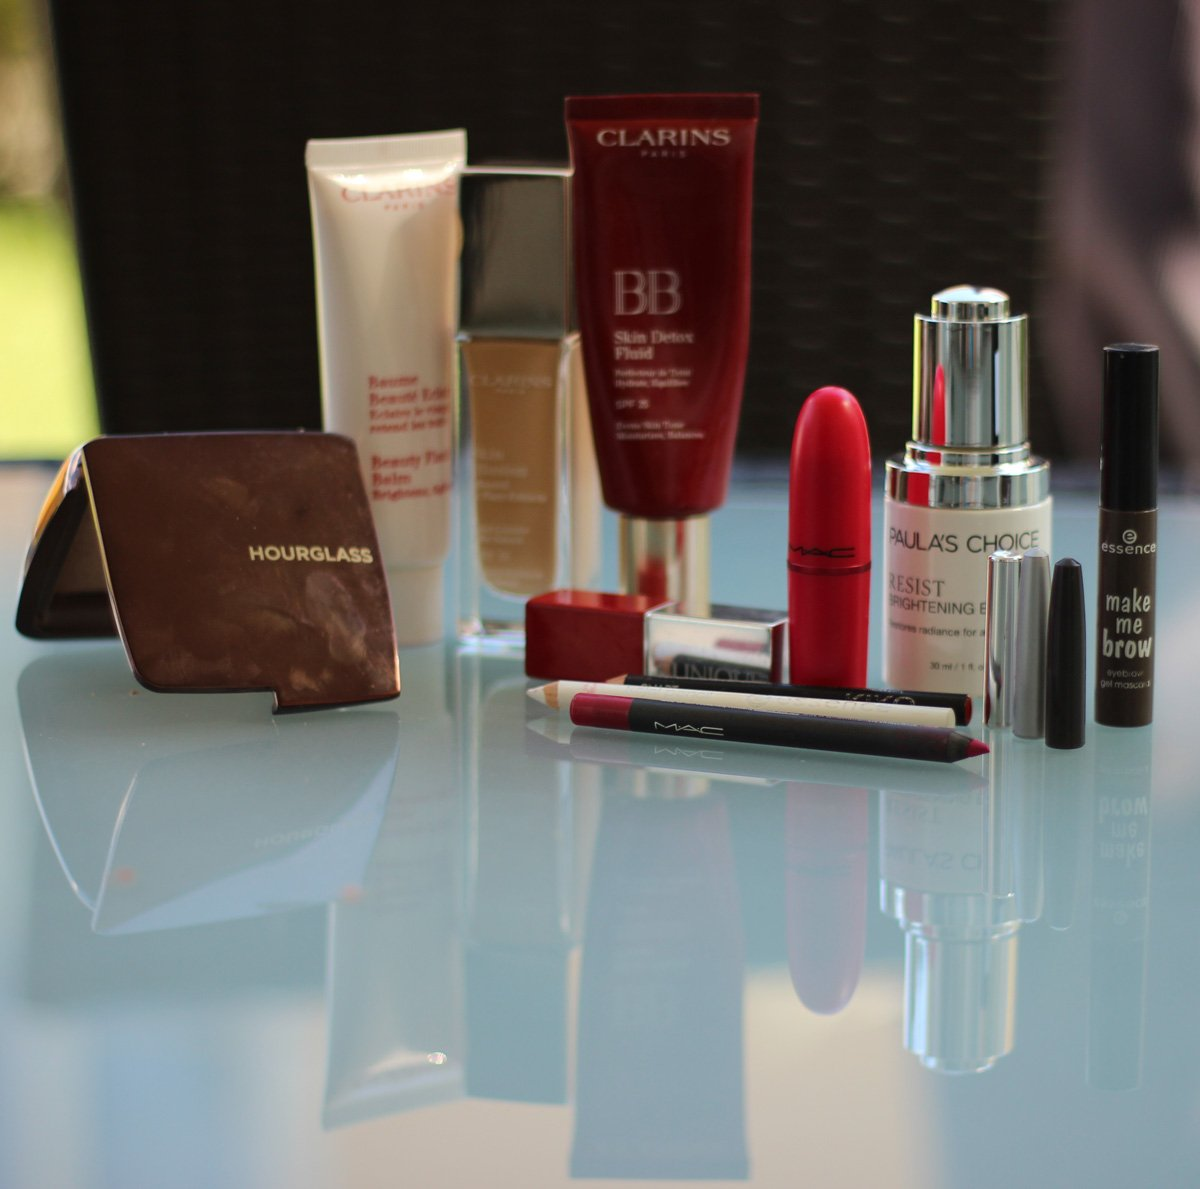 Makeup-Routine, tägliches Makeup, BB-Cream, Flash-Balm, Kosmetik